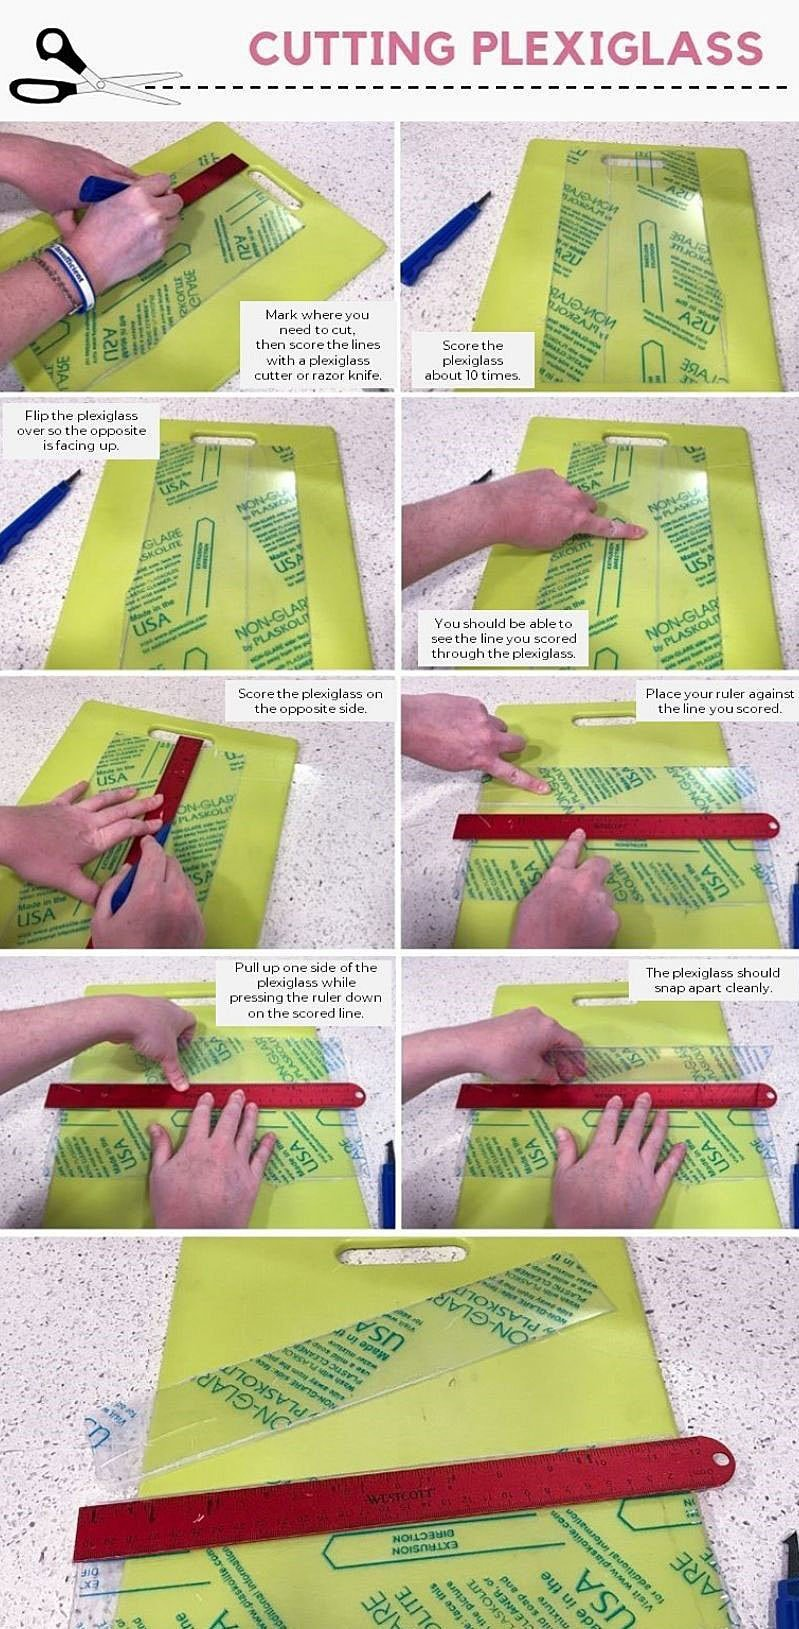 Infographic showing a simple technique for cutting thin plexiglass.